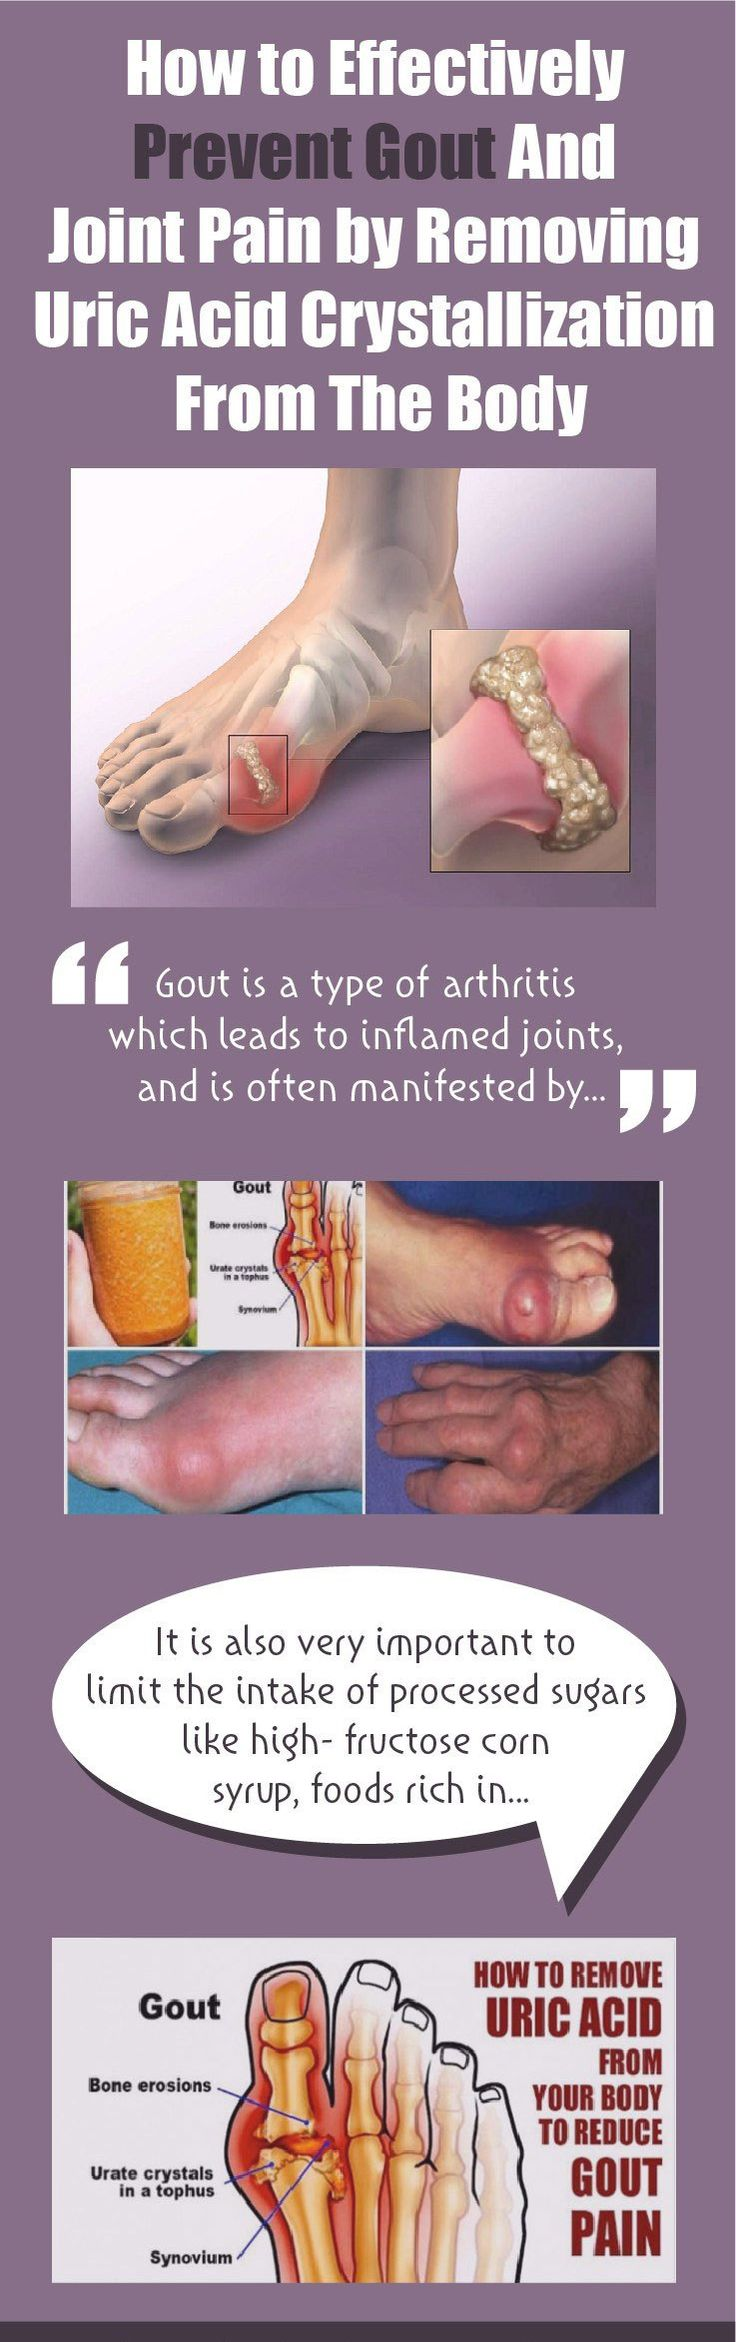 Goutis a type of arthritis which leads to inflamed joints, and is often manifested by severe pain, stiffness, and swellings. Its root cause is the excessive amounts of uric acid in the body, which accumulates and forms hard crystals in the joints. It is created by decomposingpurines, chemicals which naturally occur within the body andContinue Reading